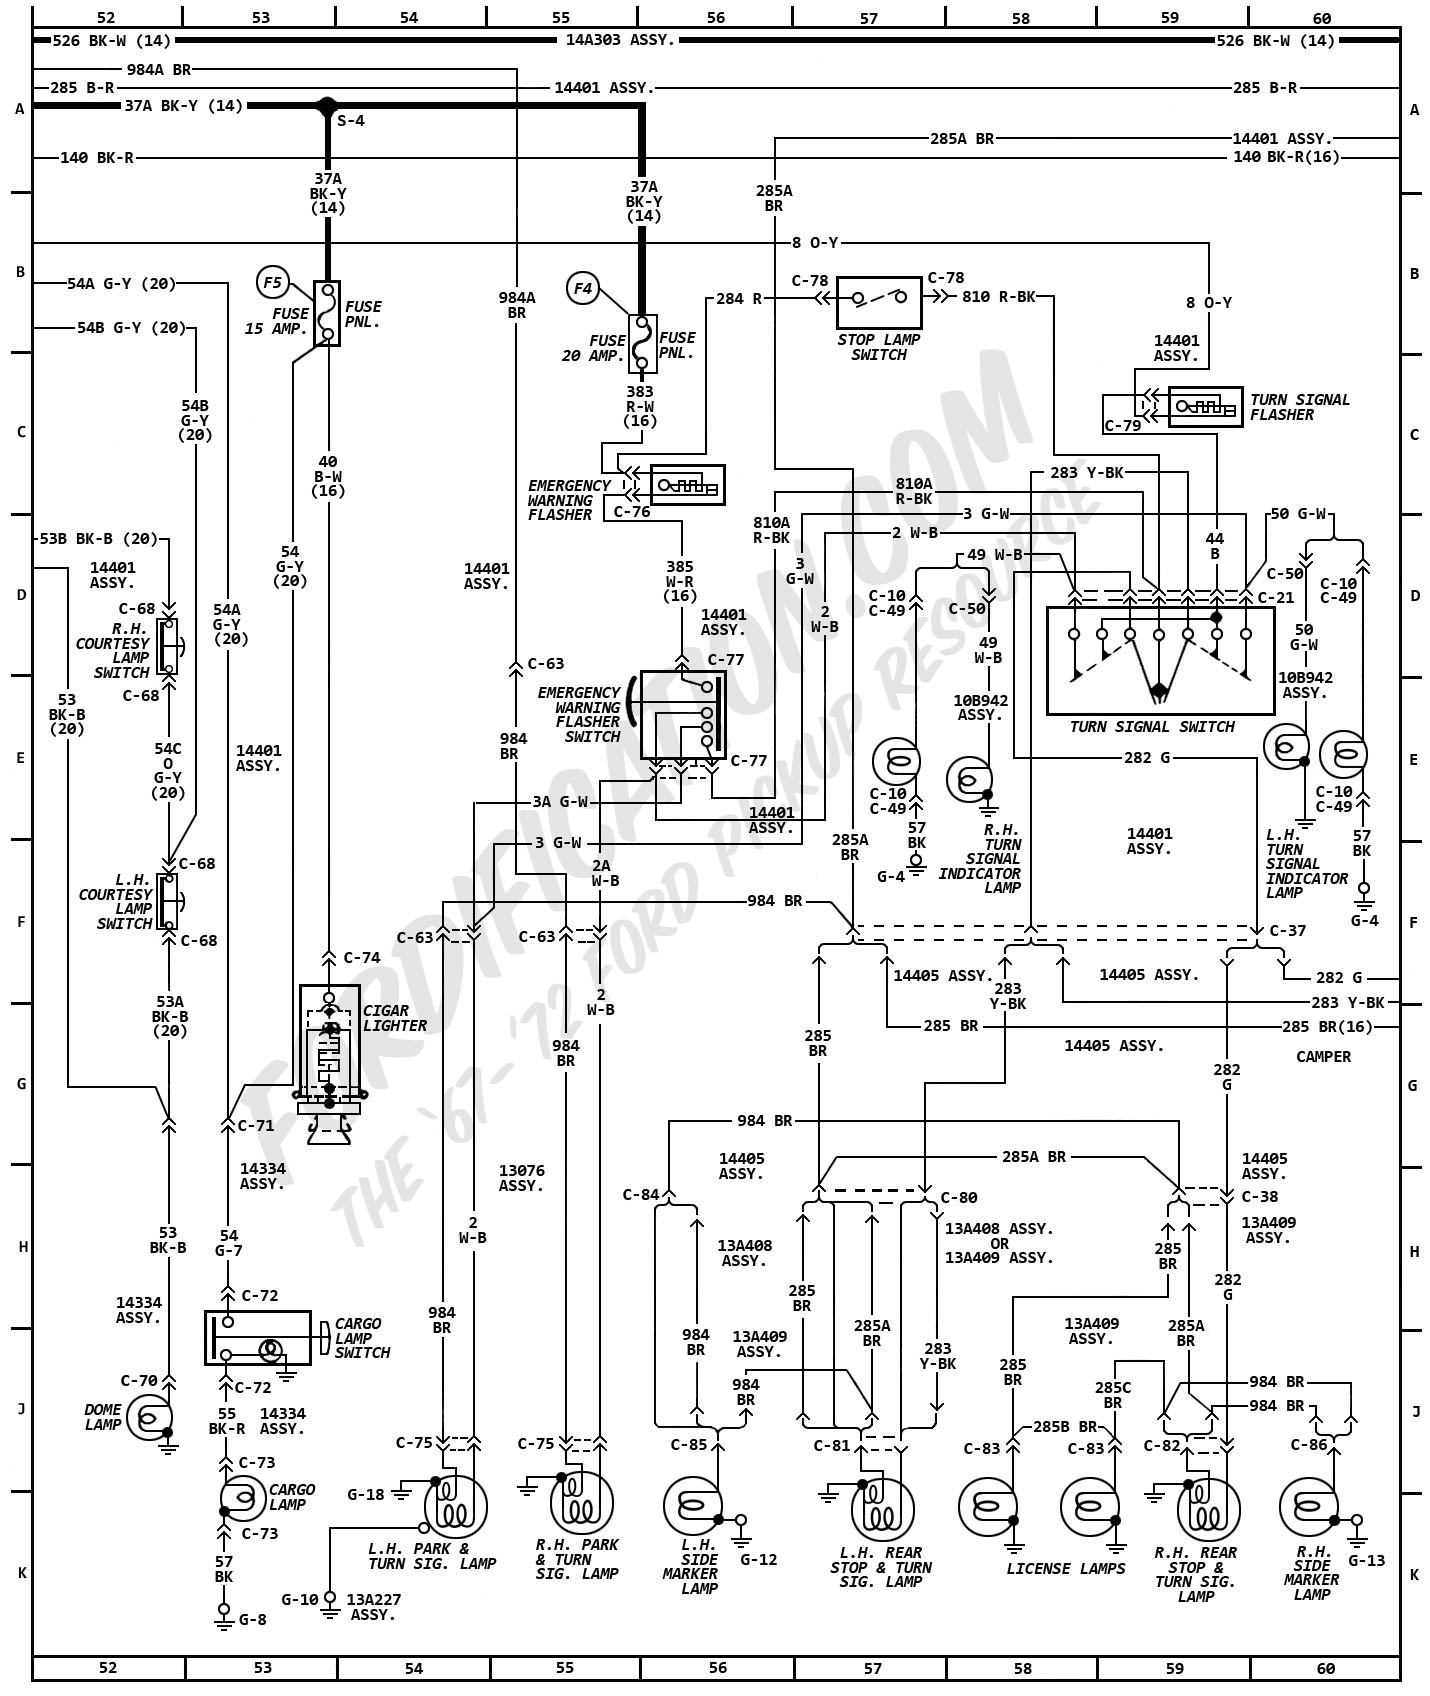 1972 F250 Ignition Wiring Schematic Opinions About Wiring Diagram \u2022  1977 Ford F-250 1973 Ford F 250 Heater Wiring